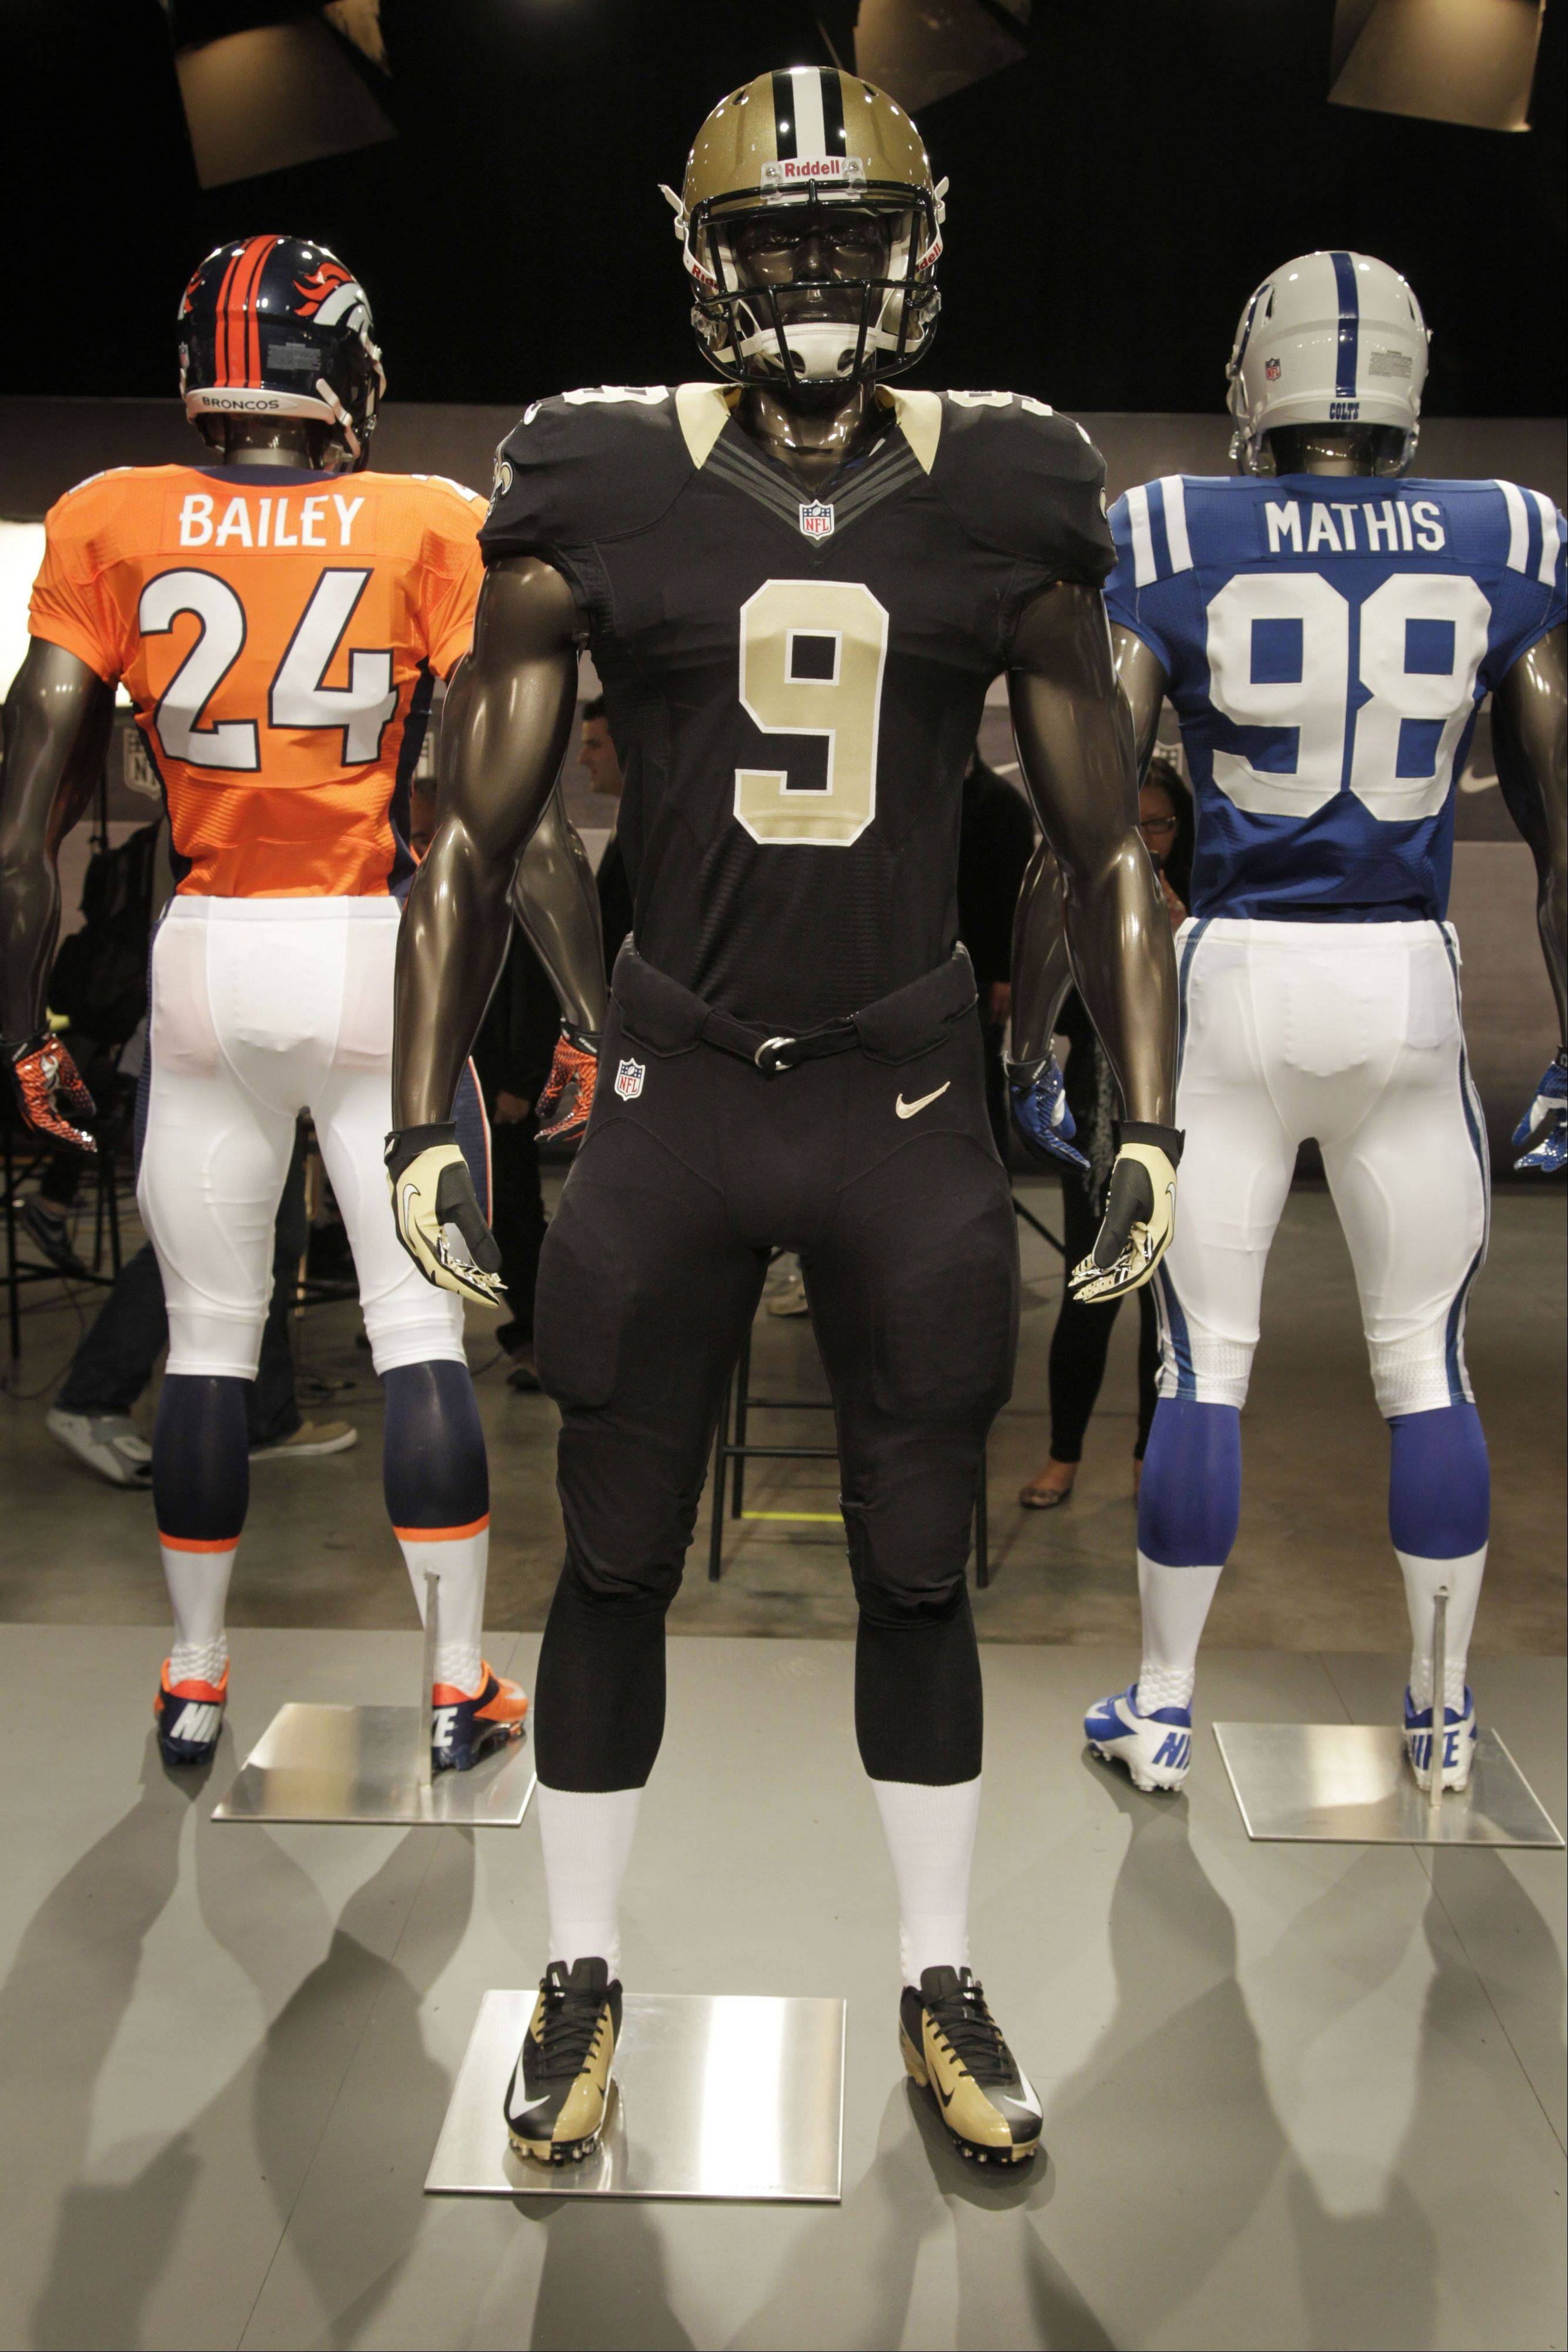 The new New Orleans Saints uniform is displayed on a mannequin in New York, Tuesday, April 3, 2012. NFL has unveiled its new sleek uniforms designed by Nike. While most of the new uniforms are not very different visually, they all are made with new technology that make them lighter, dryer and more comfortable.